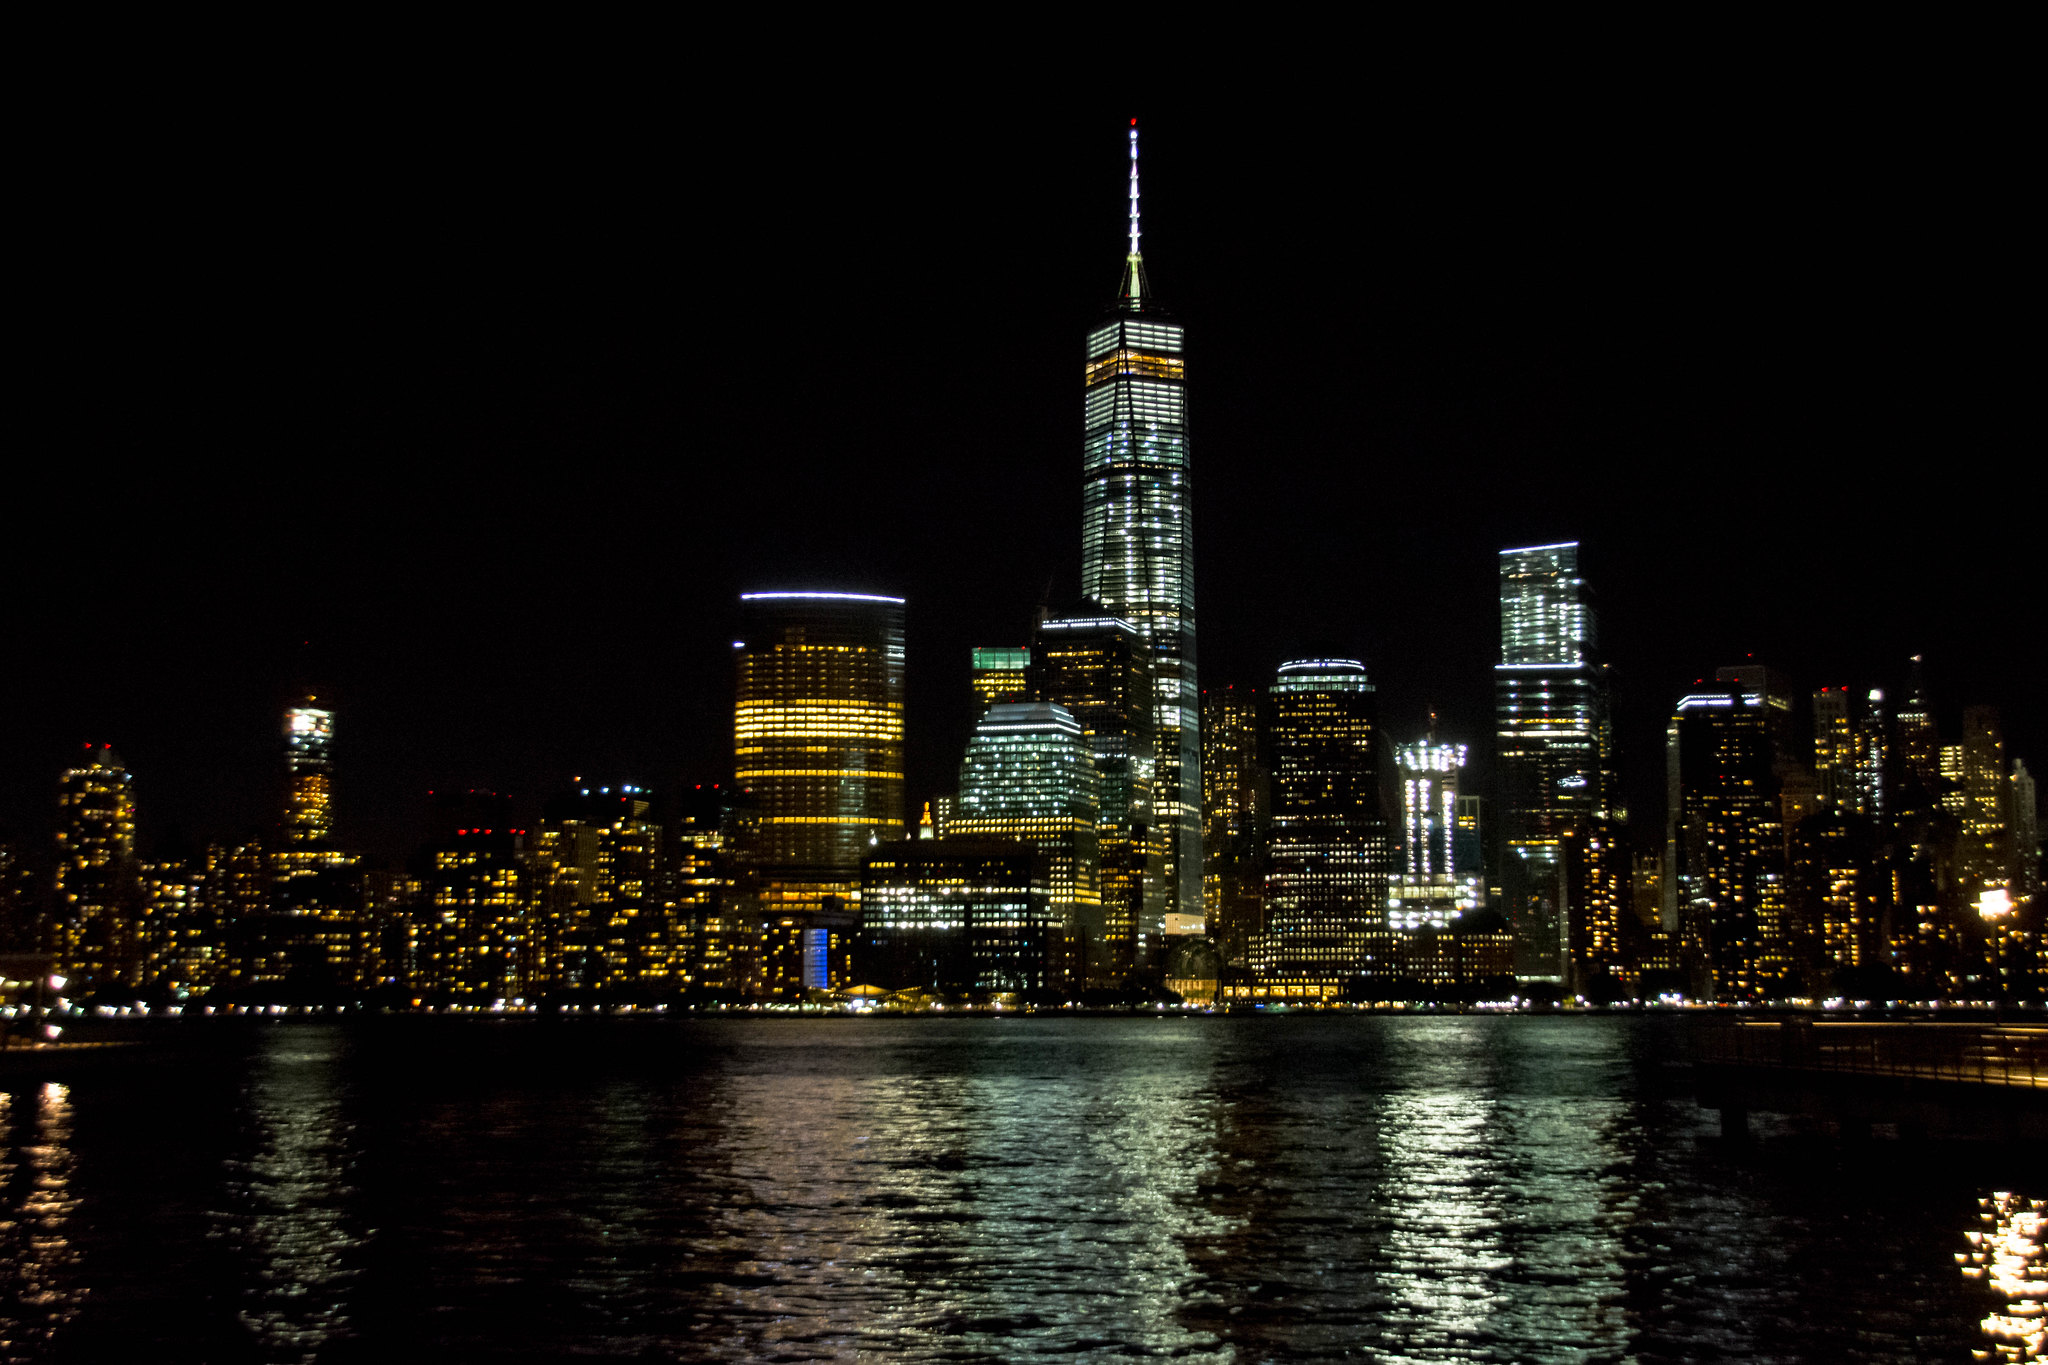 20150914 New York Manhattan night